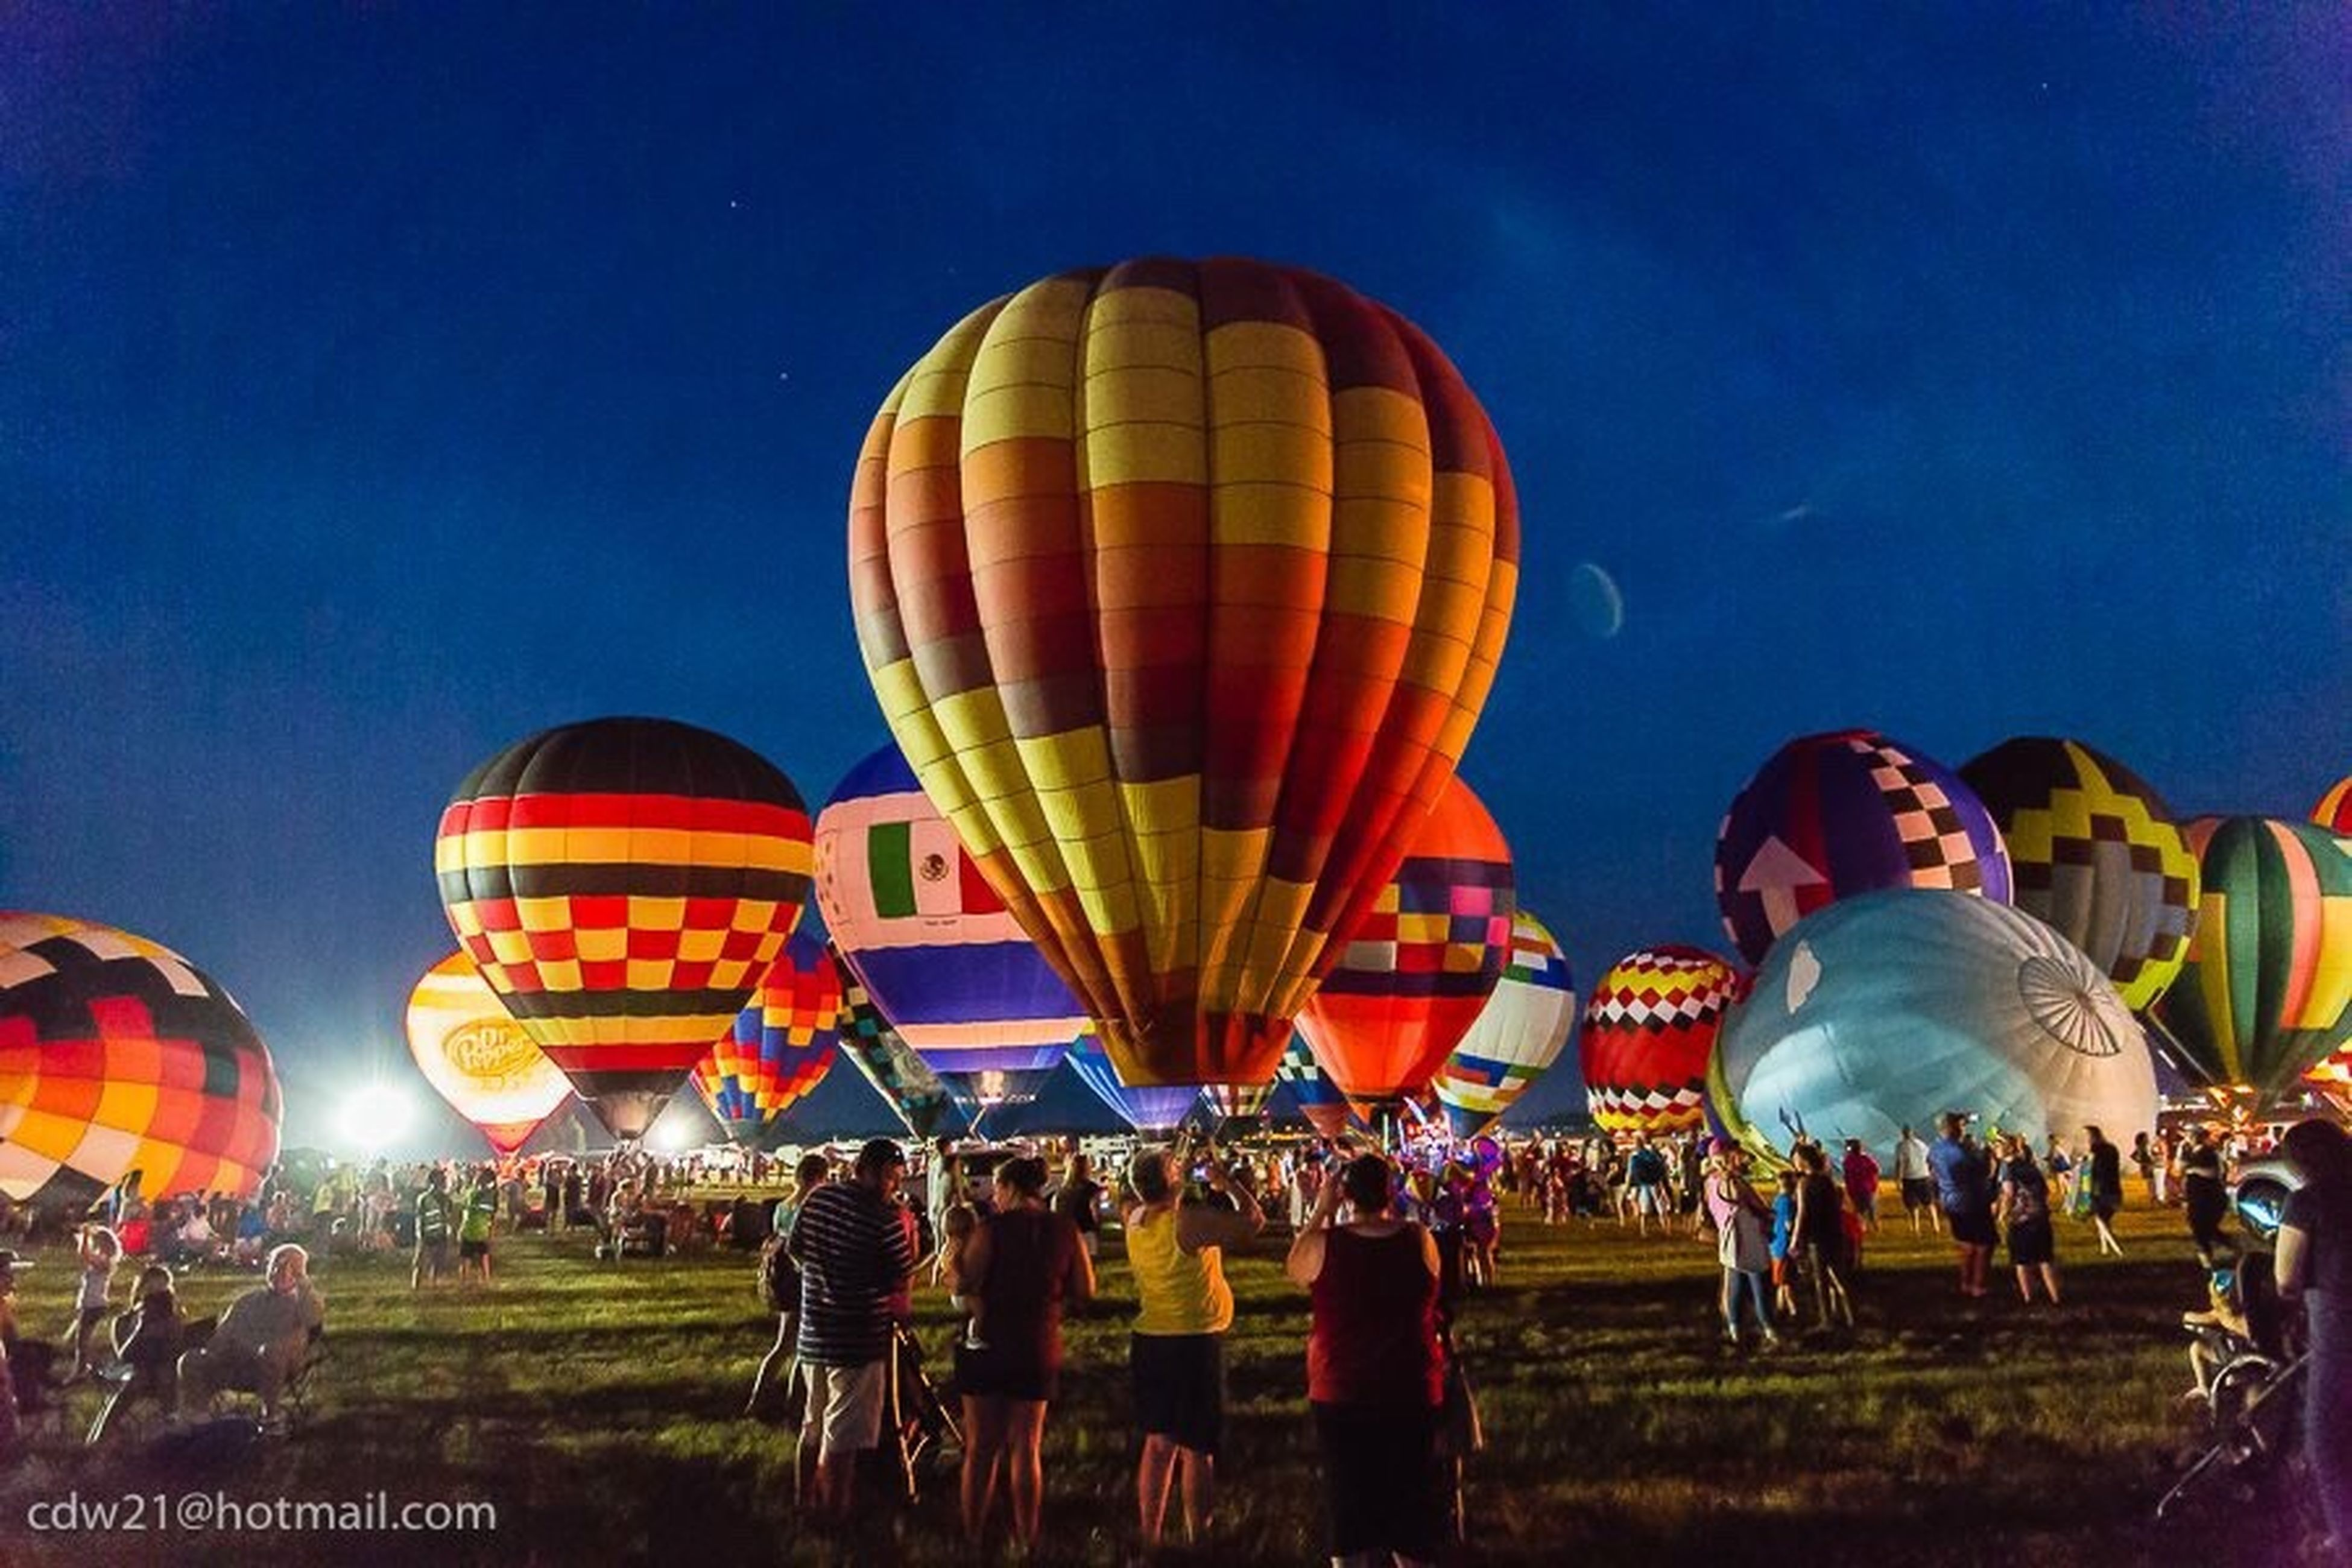 leisure activity, lifestyles, arts culture and entertainment, fun, enjoyment, blue, sky, amusement park ride, hot air balloon, illuminated, outdoors, multi colored, casual clothing, group of people, grass